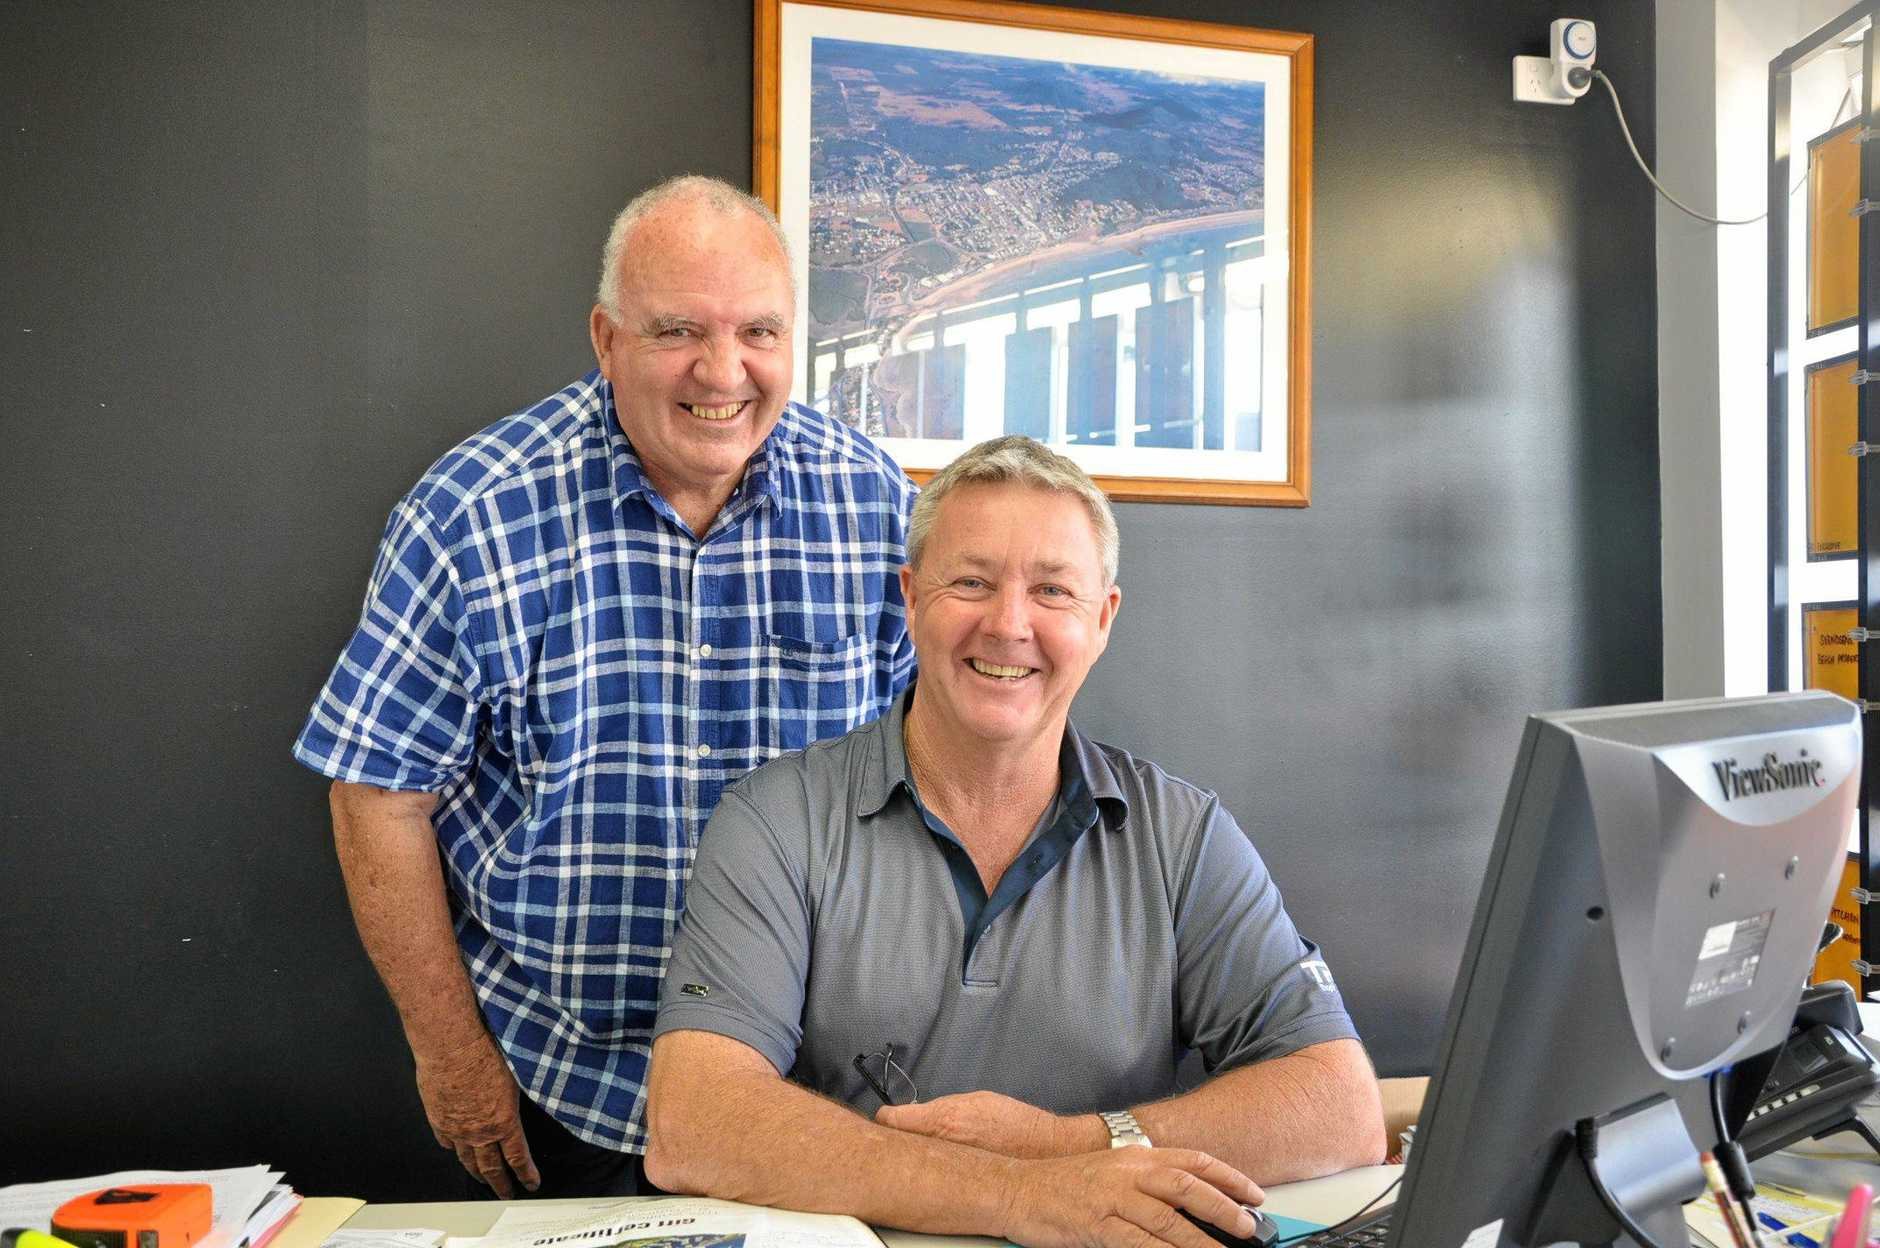 Paul Lancaster and Sean Appleton from @The Beach Real Estate can see dreams coming true at the island retreat